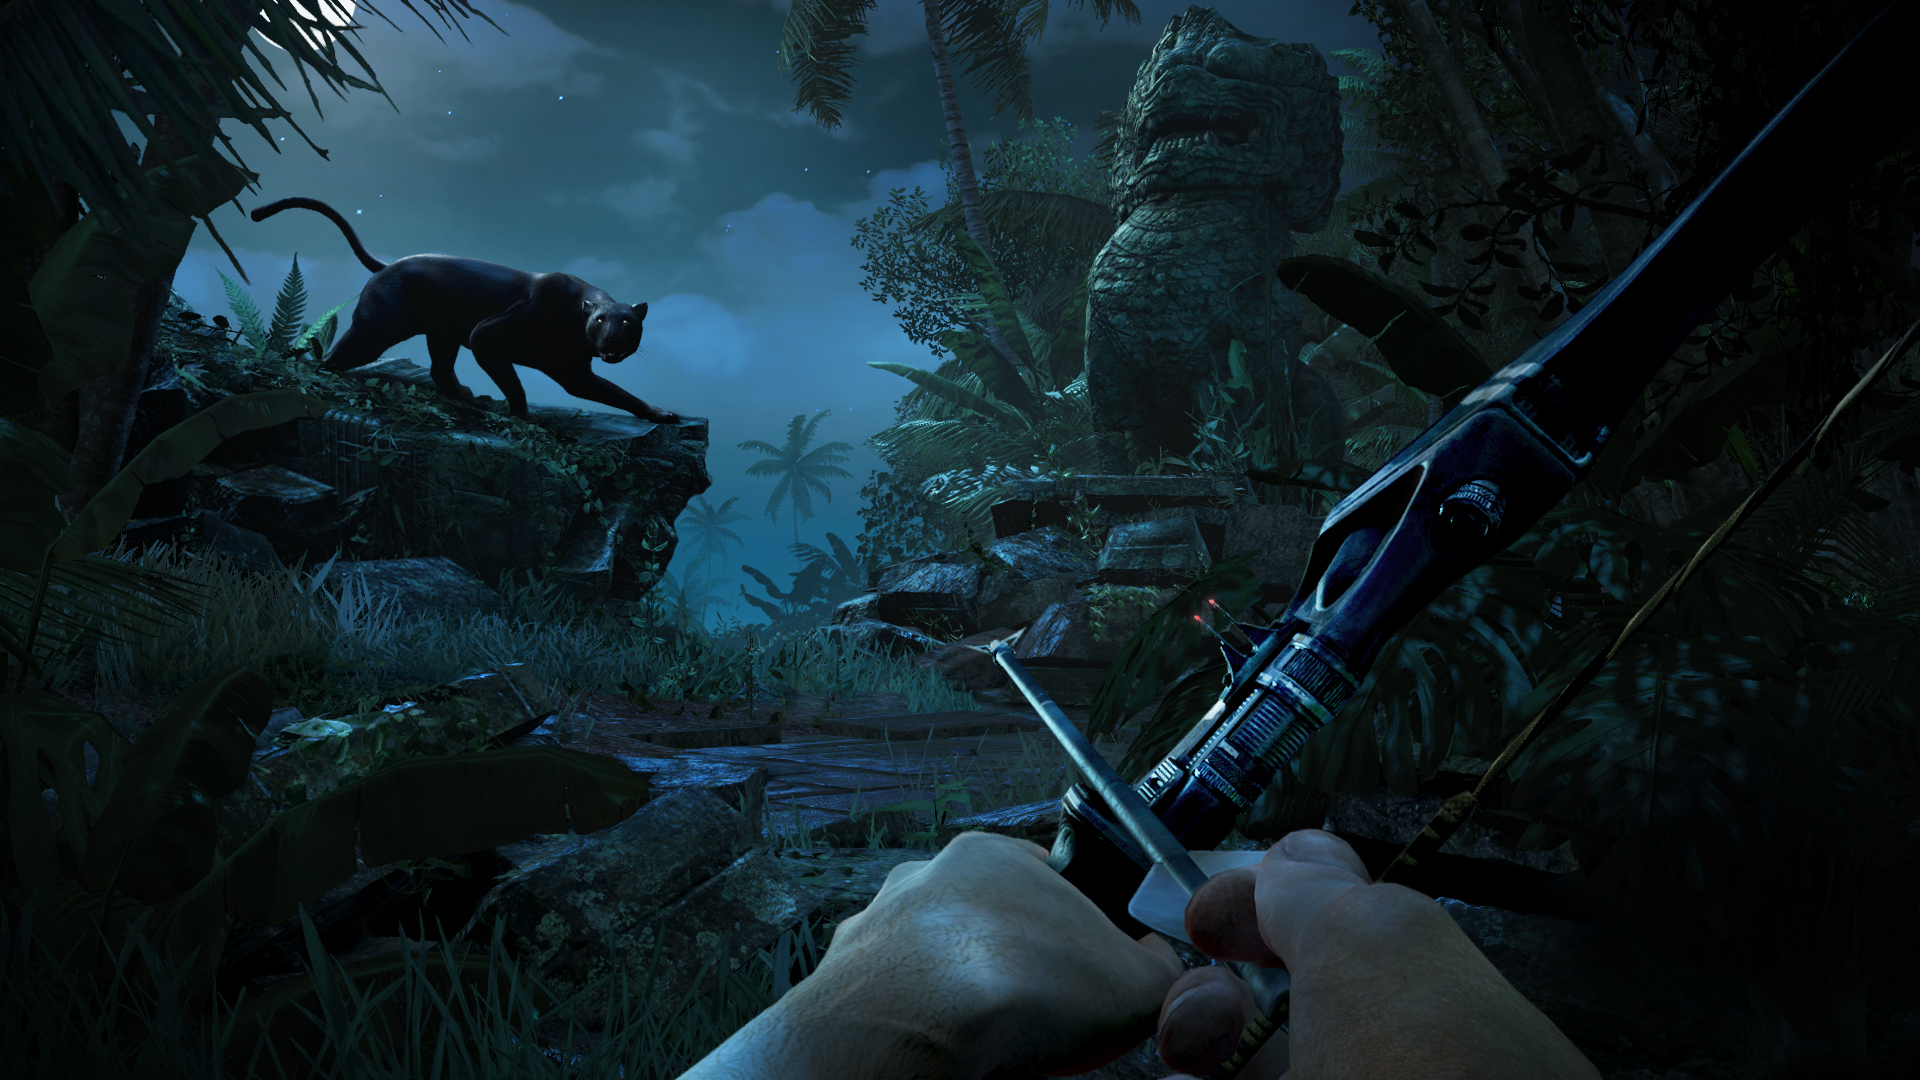 Far Cry 3 Animals Jaguar Jungle Trees Forest Hunting Archer Bow Wallpaper